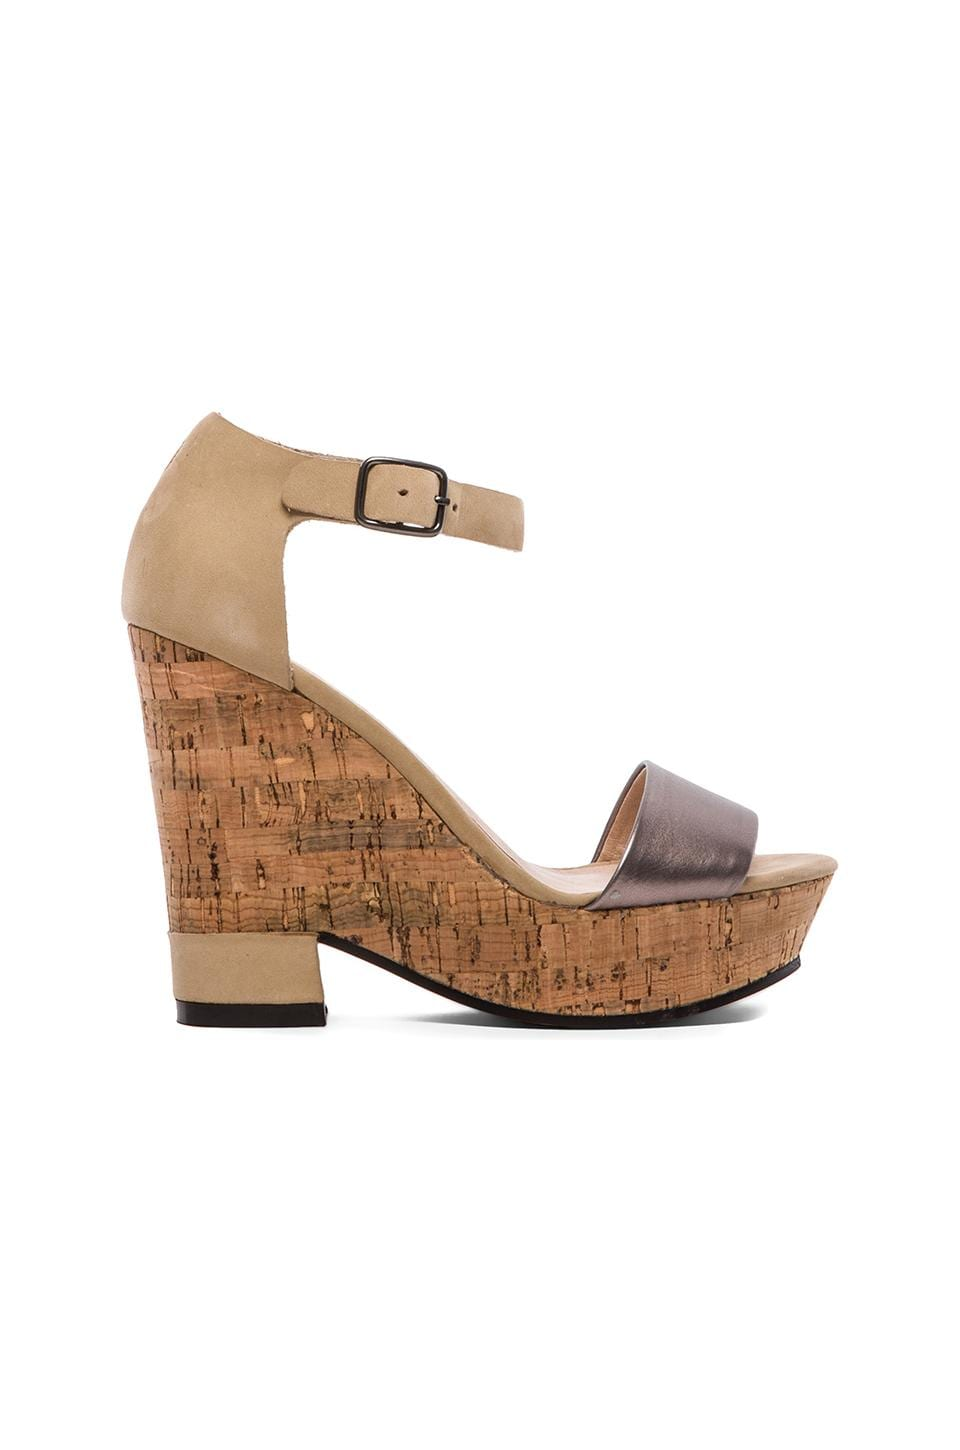 Matisse Eternity Wedge in Ivory